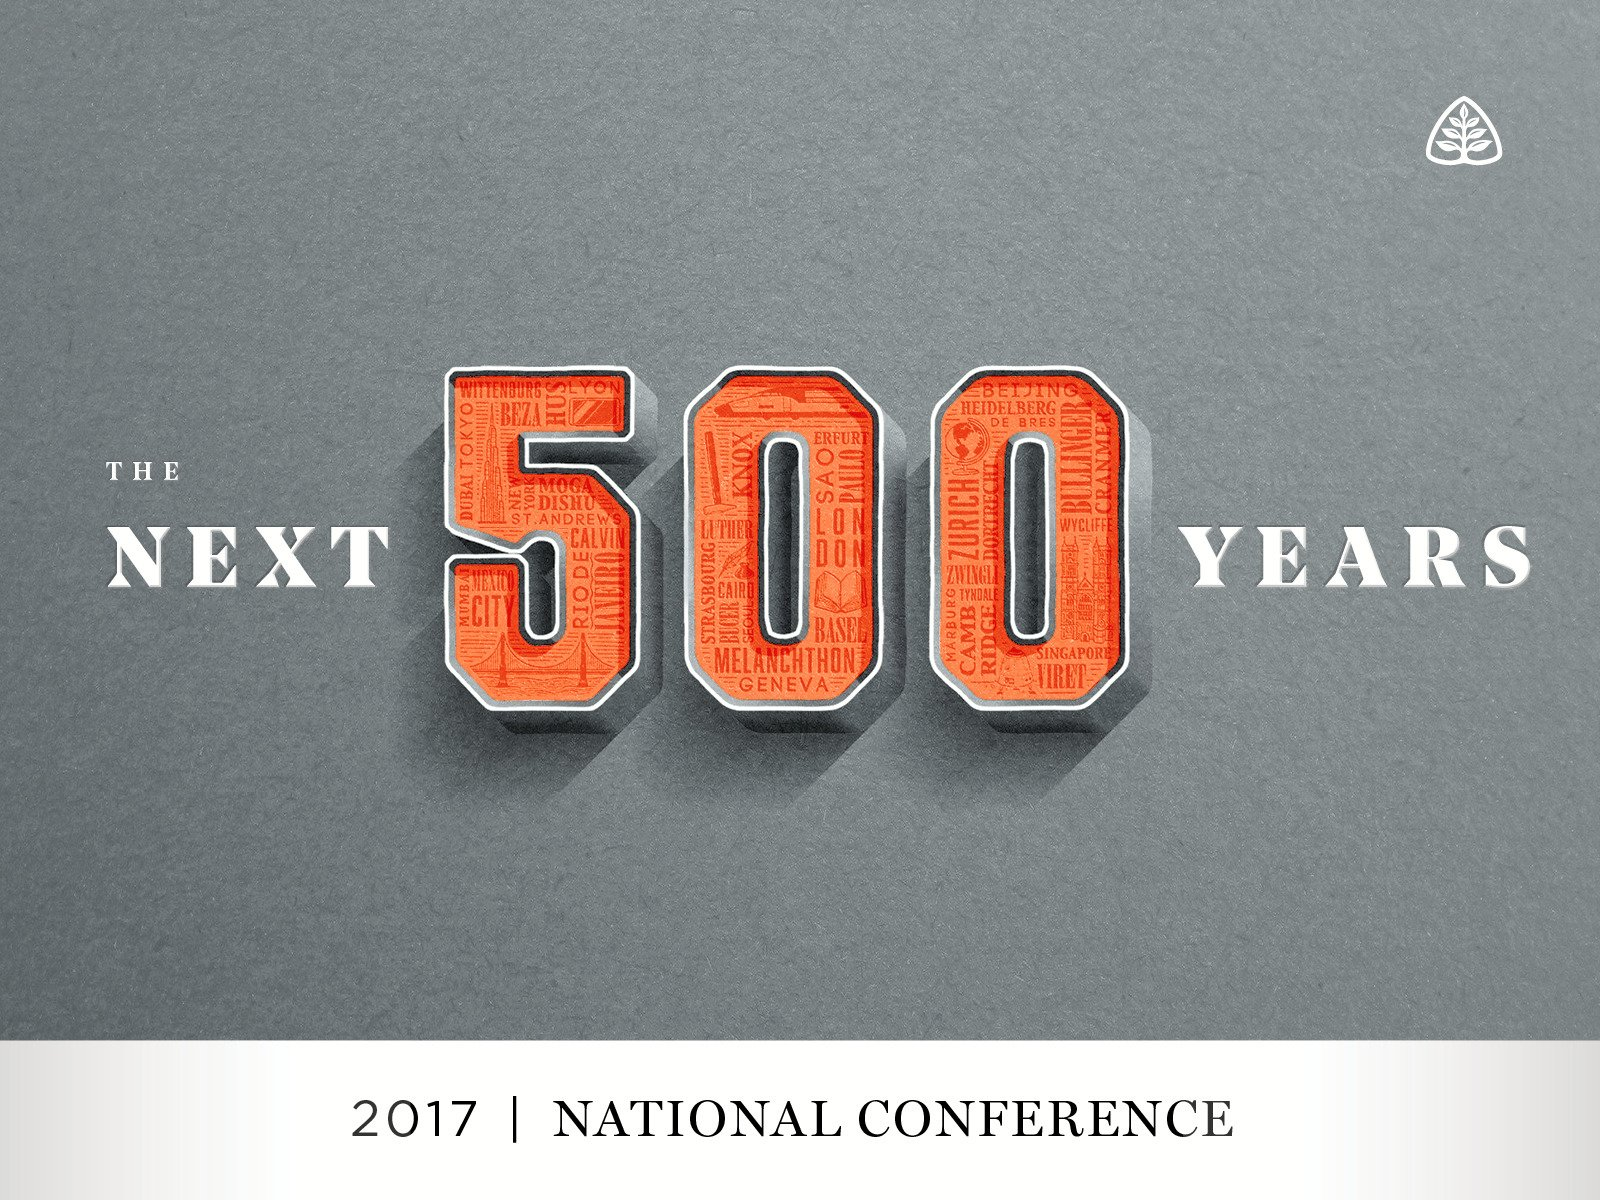 The Next 500 Years: 2017 National Conference - Season 1